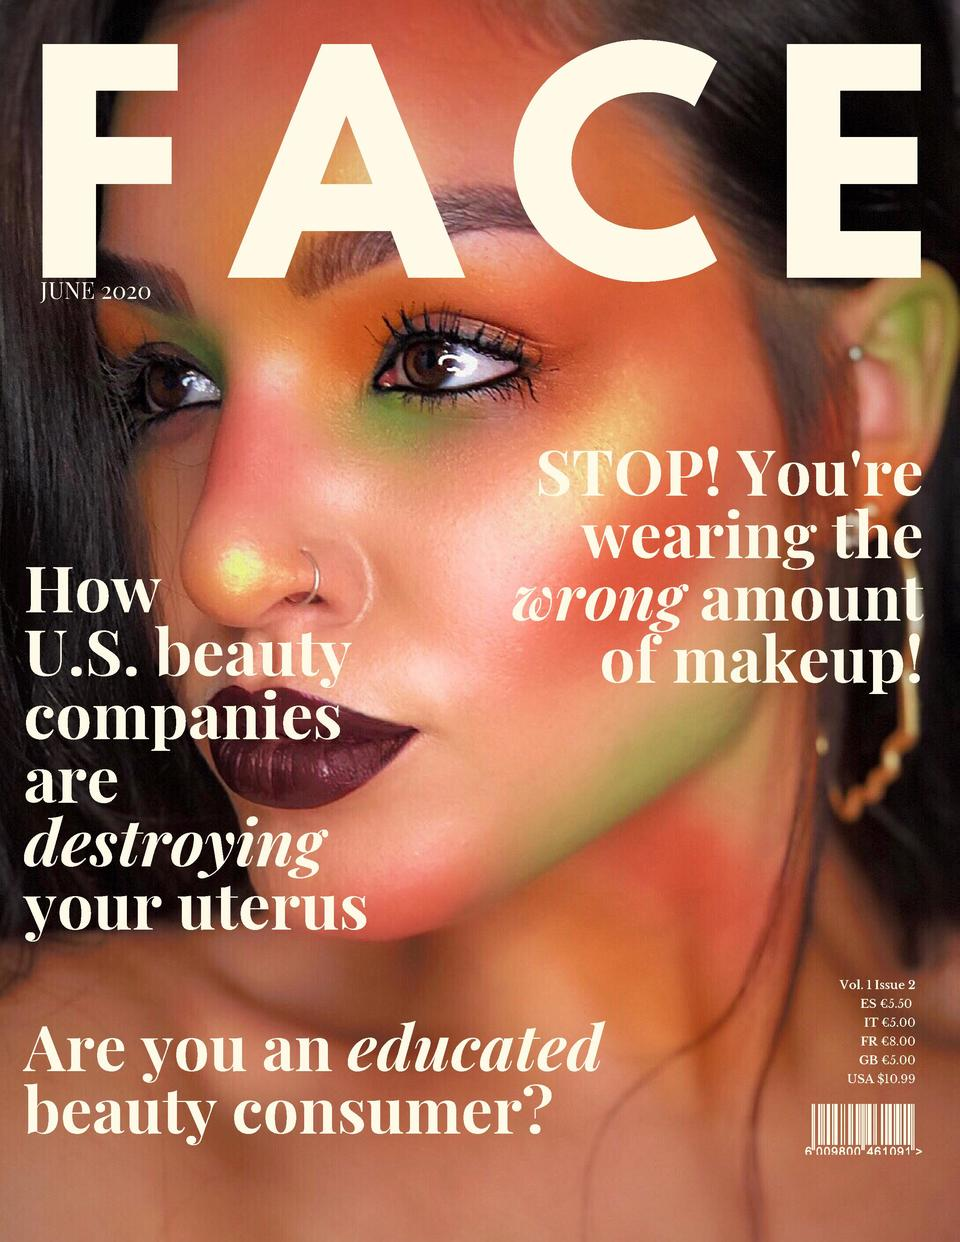 FACE JUNE 2020  How U.S. beauty companies are destroying your uterus  STOP  You re wearing the wrong amount of makeup   Vo...